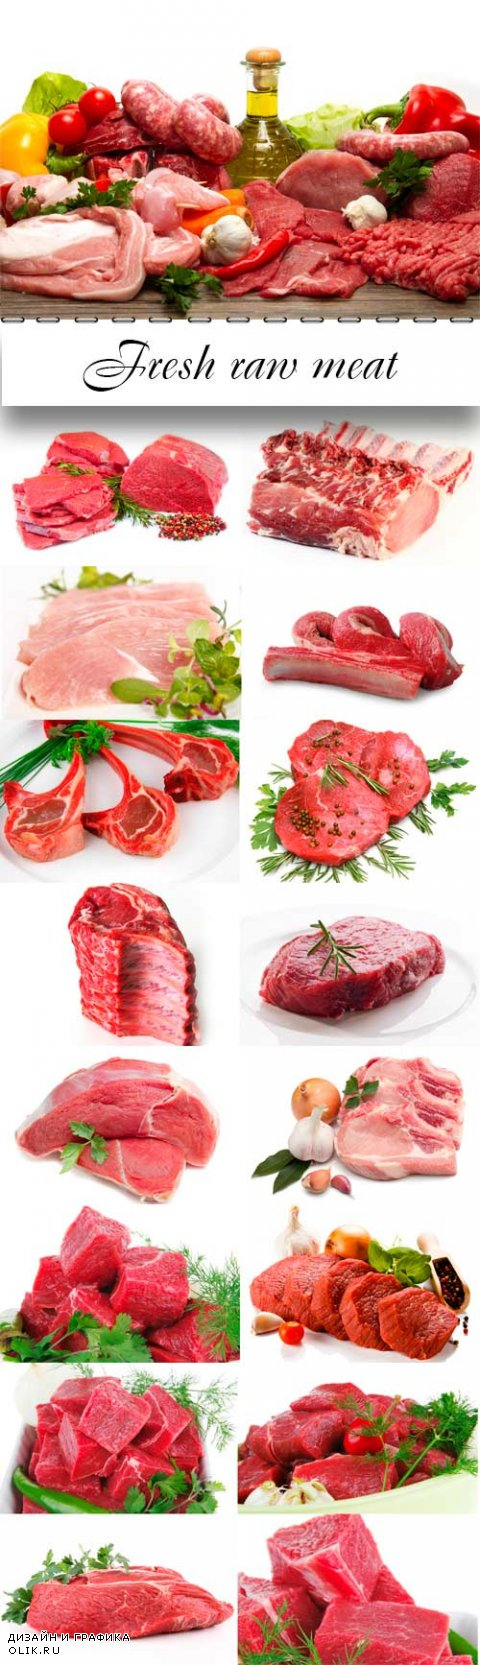 Fresh raw meat on white background